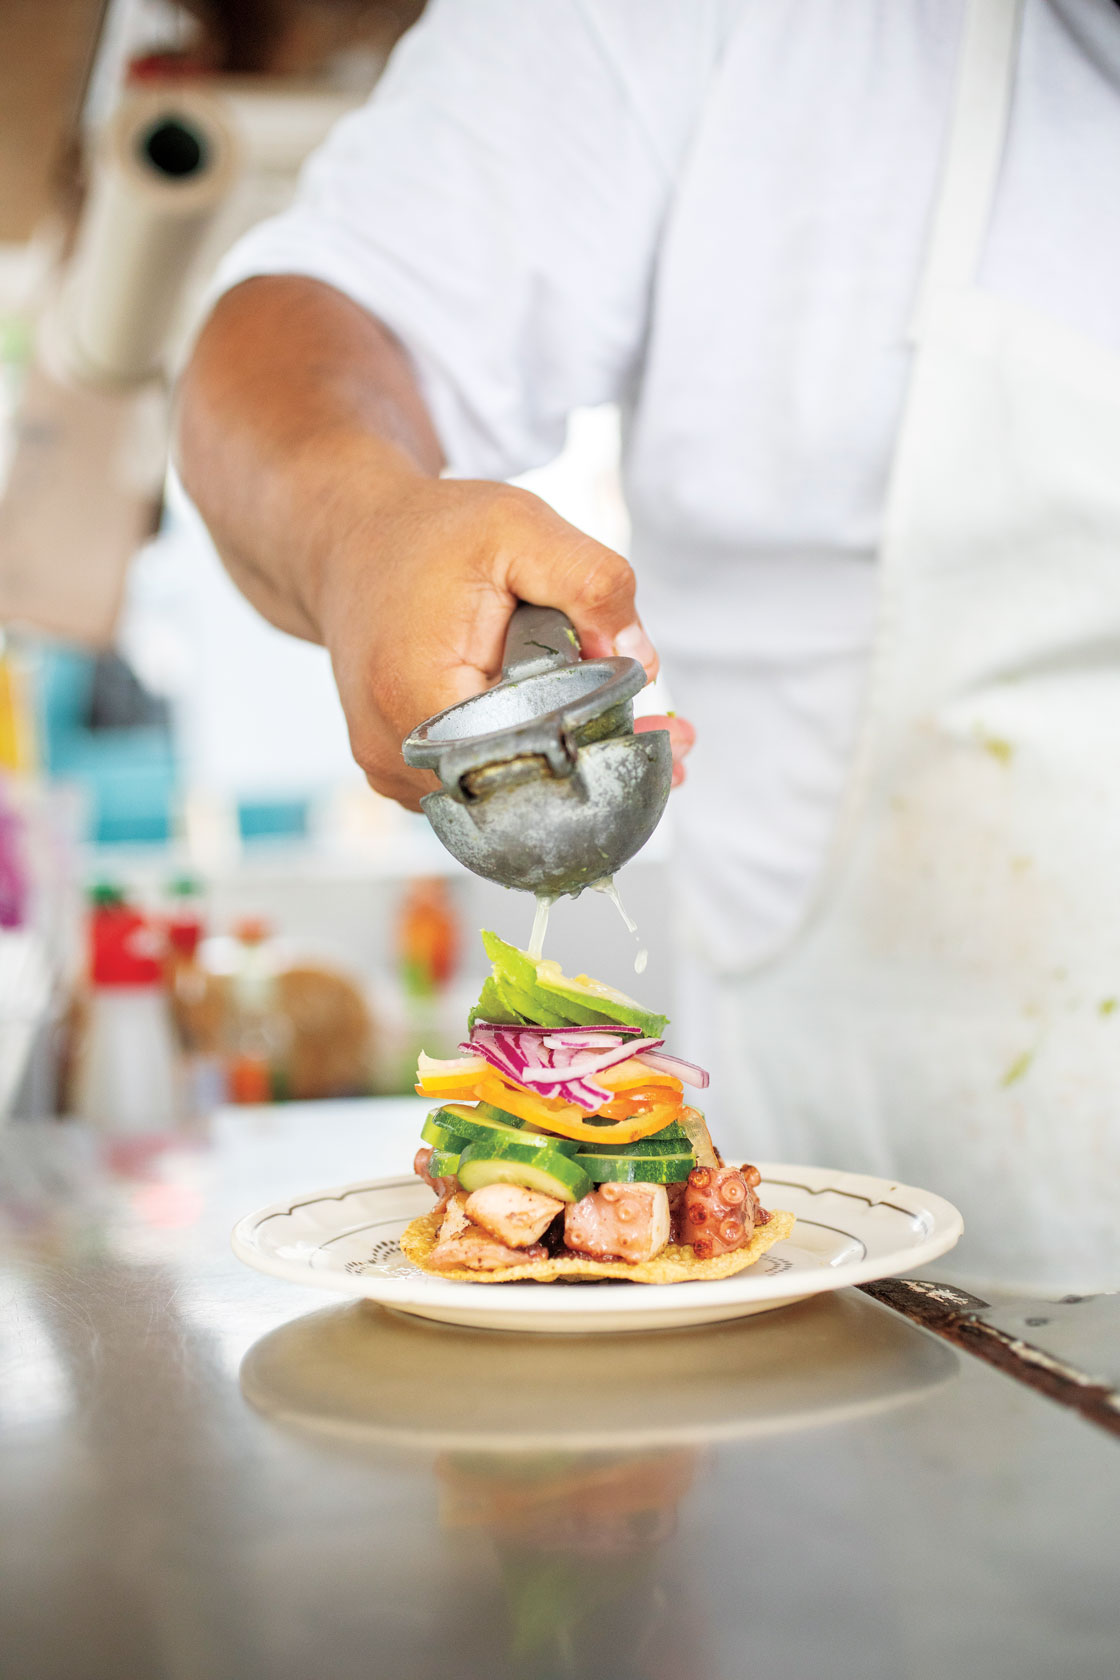 A chef squeezing fruit on a colorful dish.